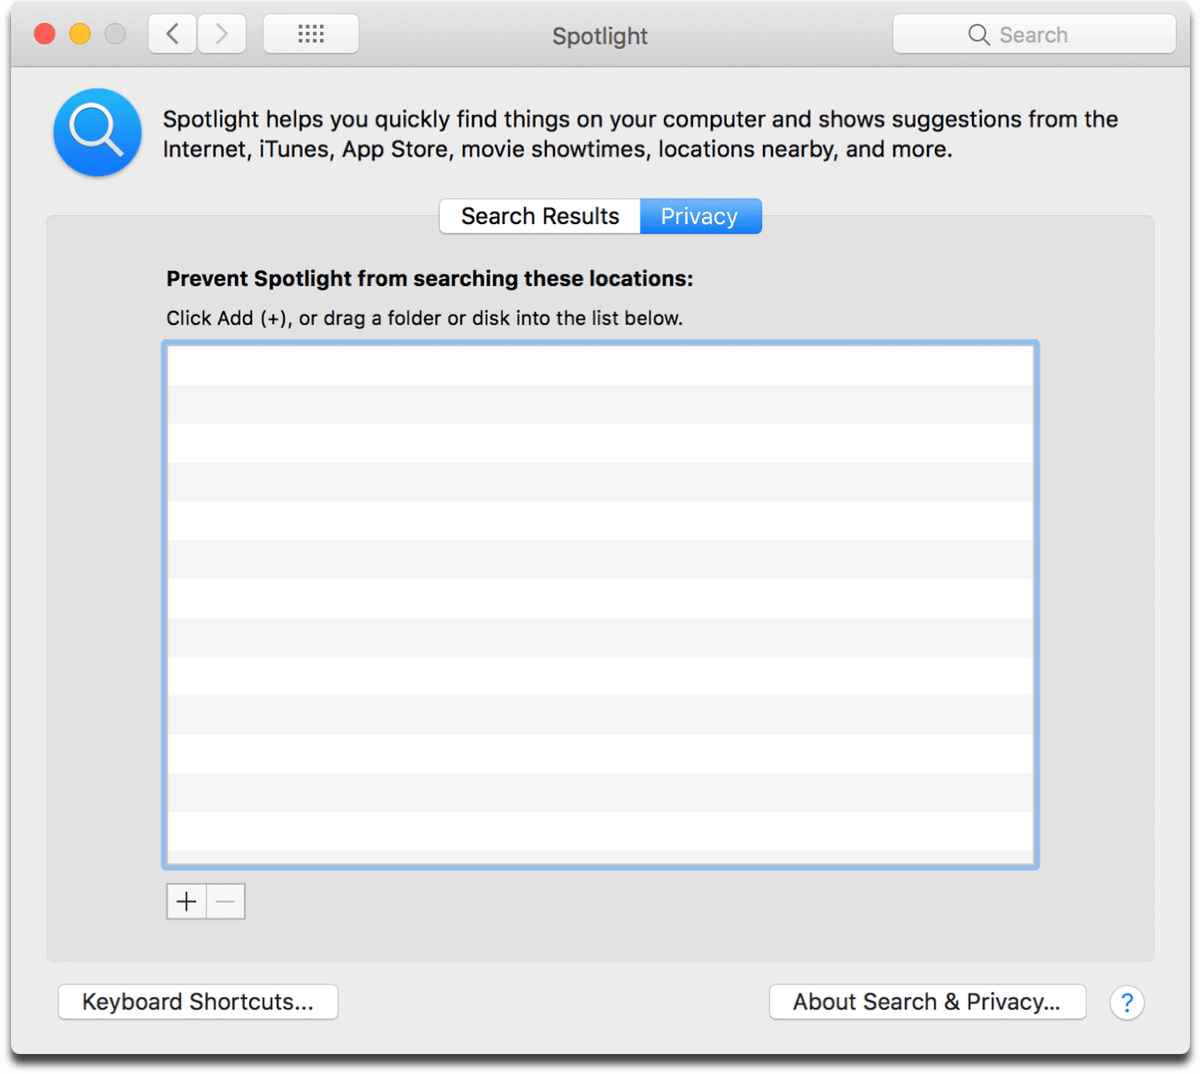 Stop Spotlight indexing by going into System Preferences as shown in this image.